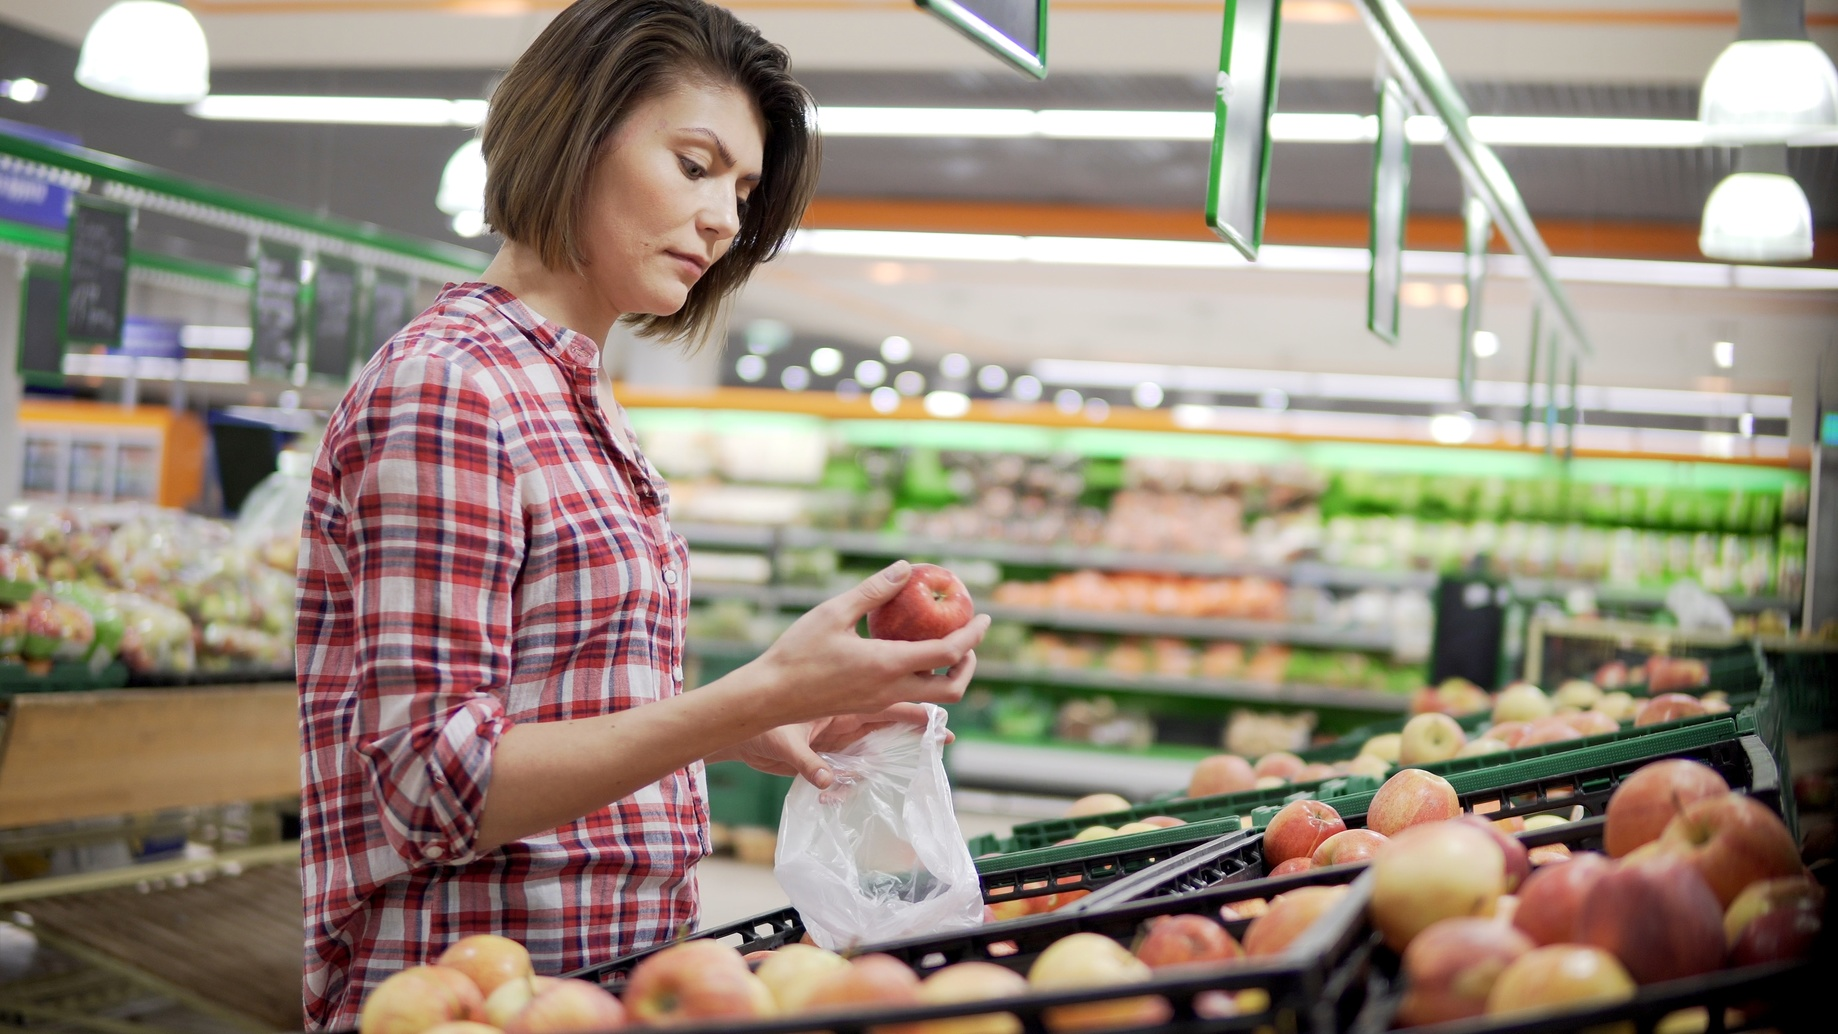 Beautiful woman shopping red apples in supermarket